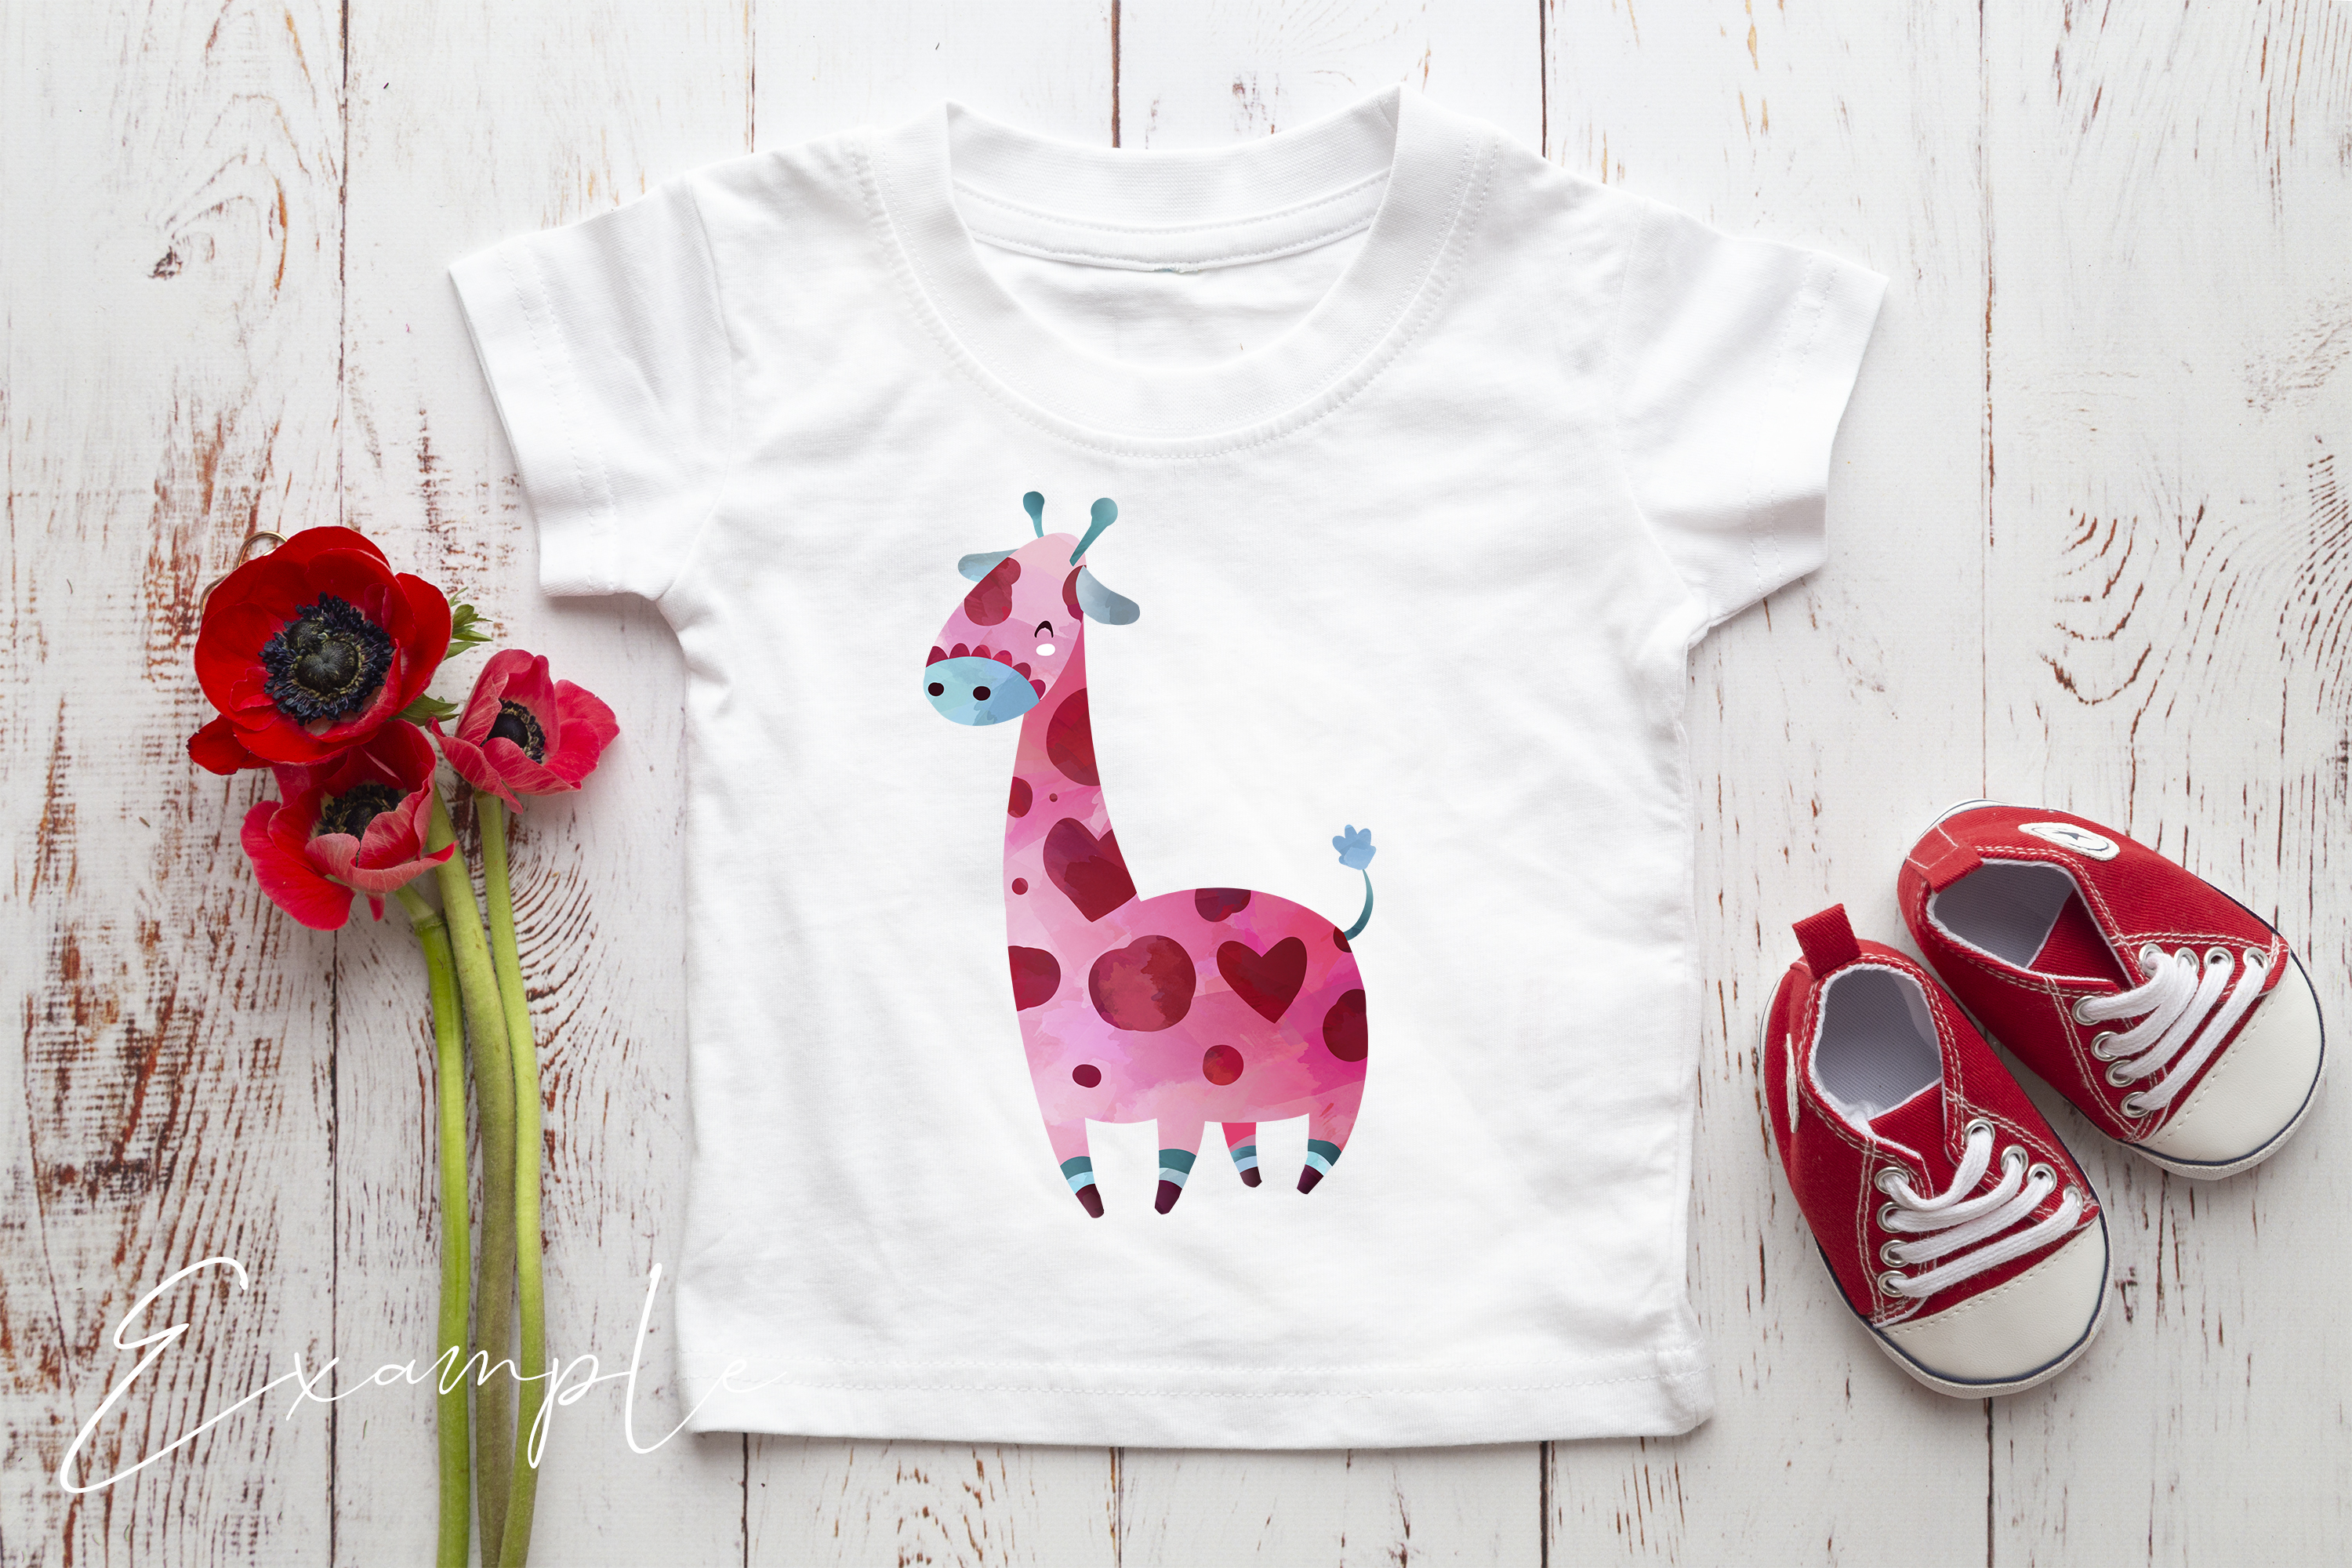 Onesie, Infant T-Shirt Mockup example image 2